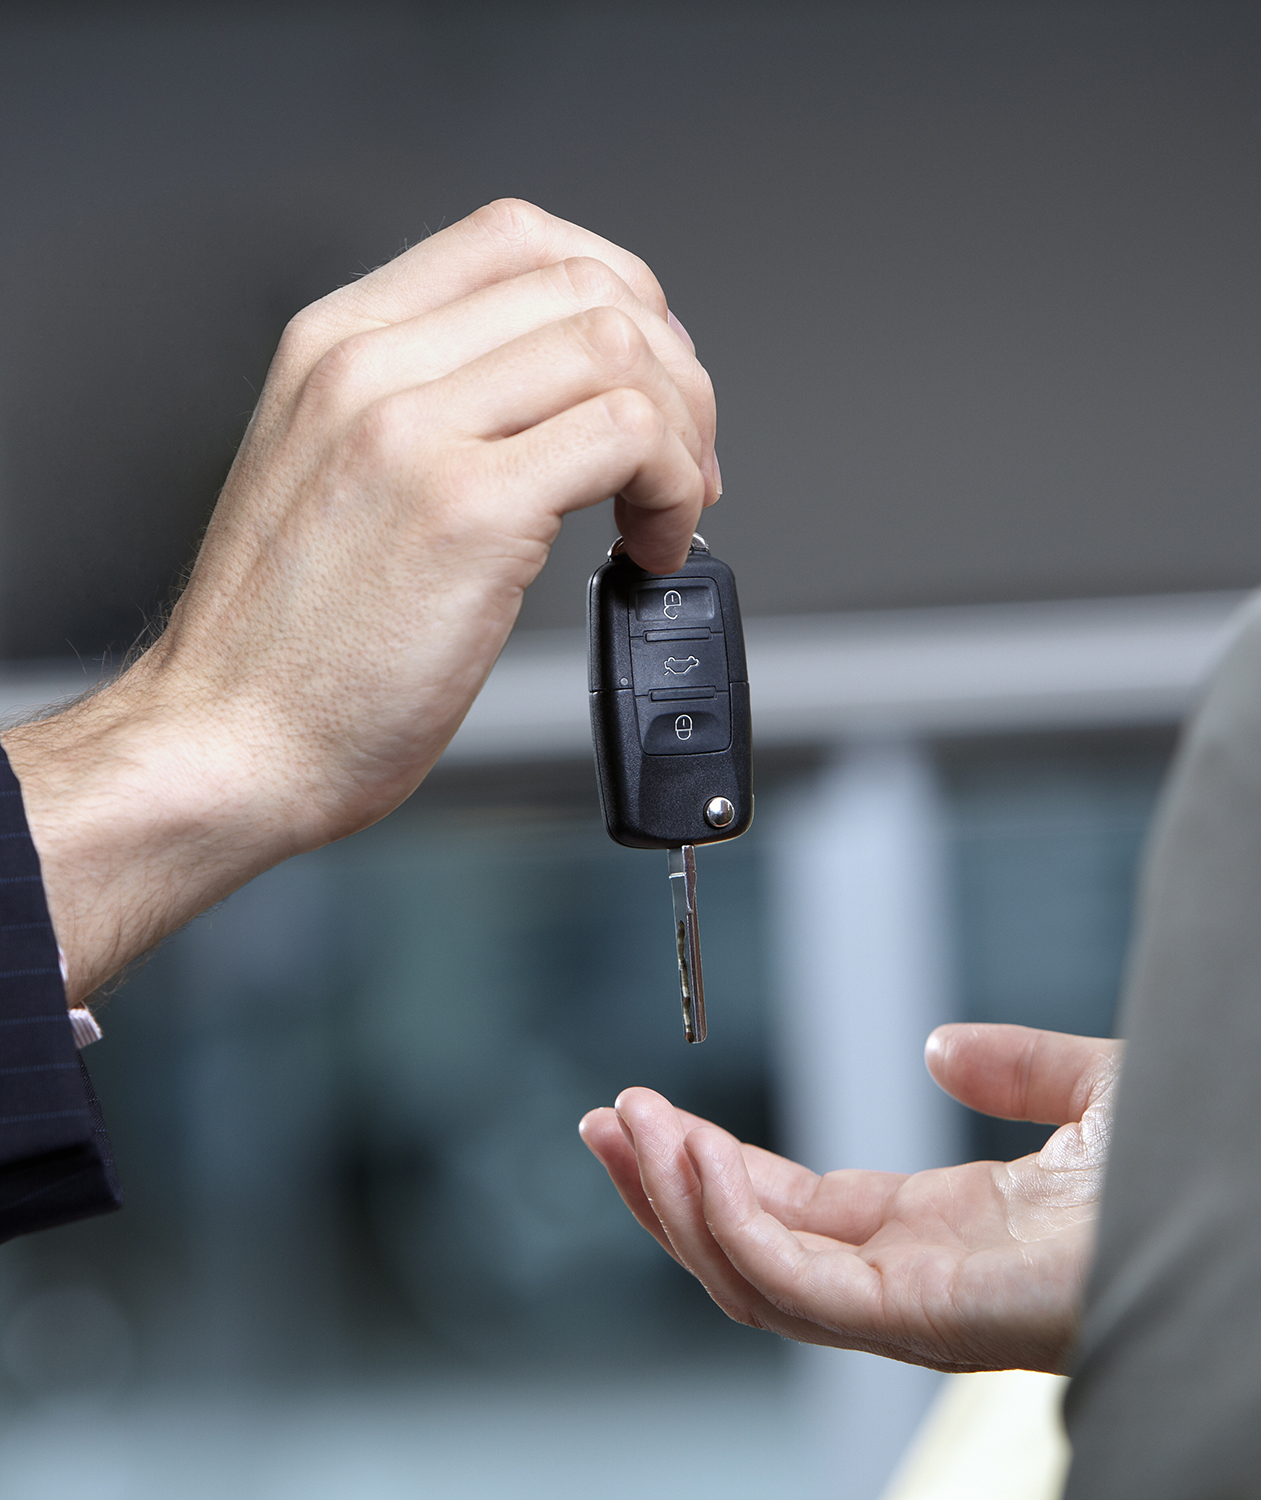 Car salesman handing over key